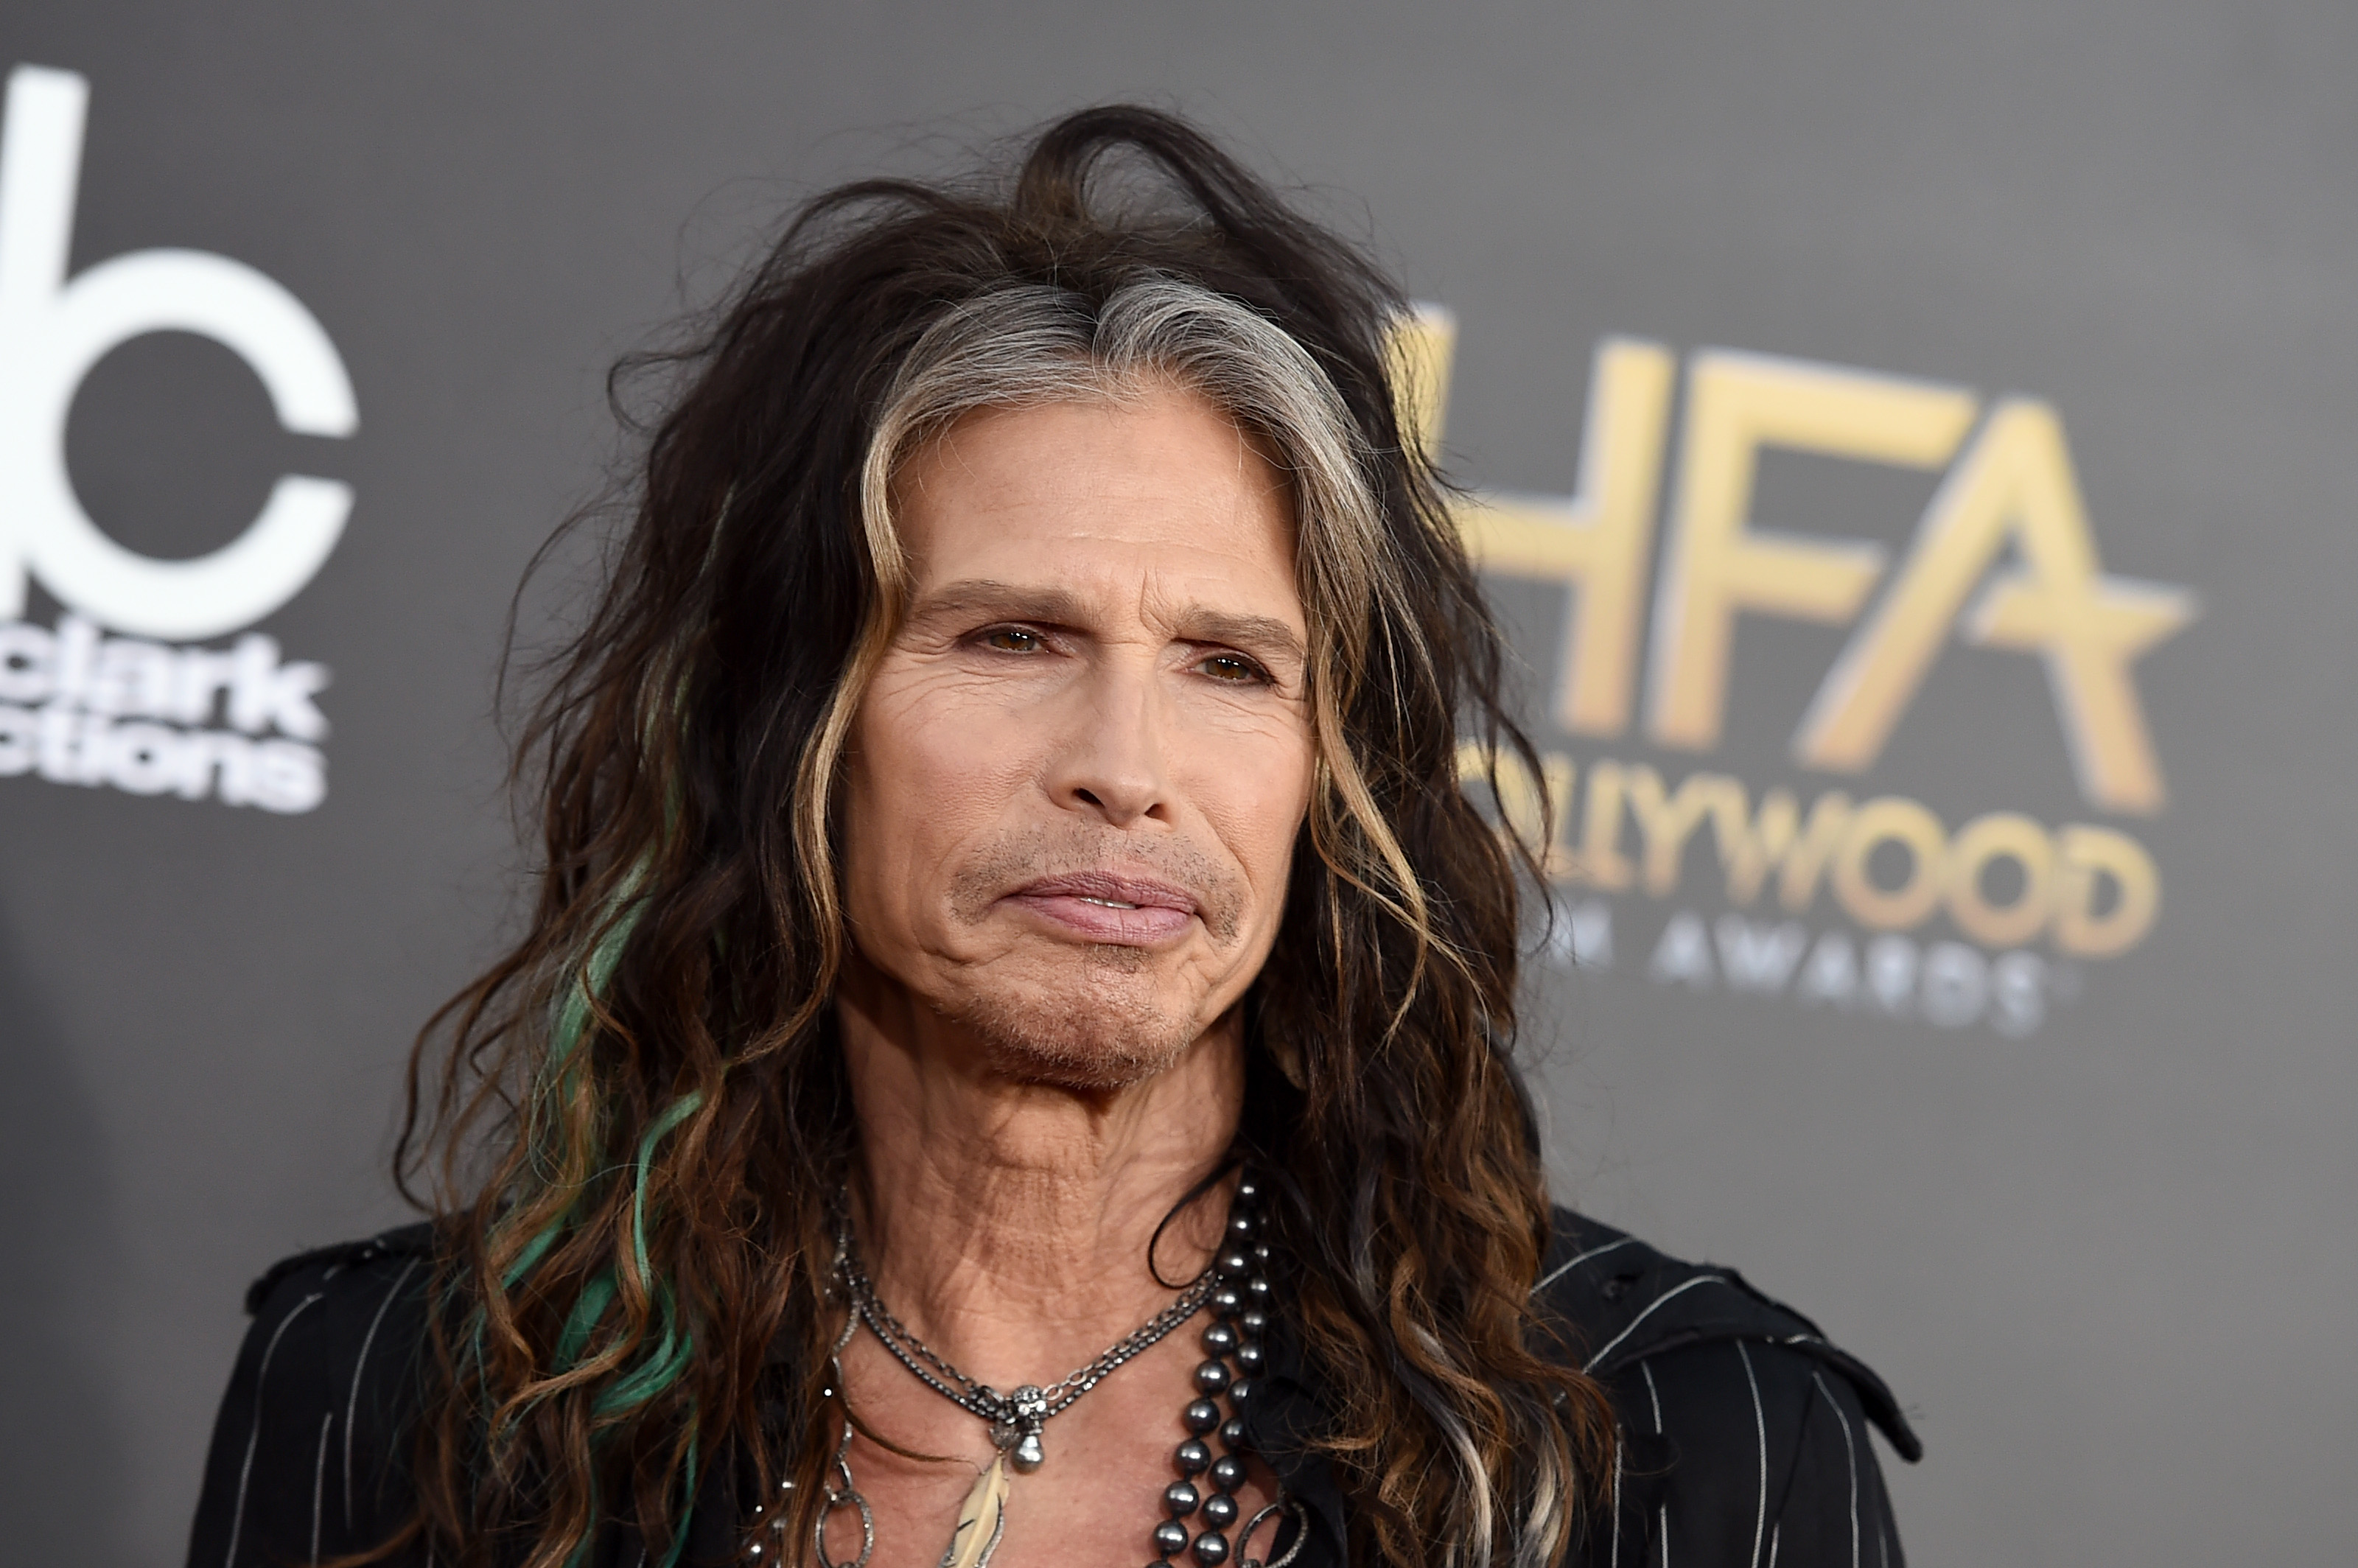 Steven Tyler headlines Rolling Stone party on Super Bowl eve